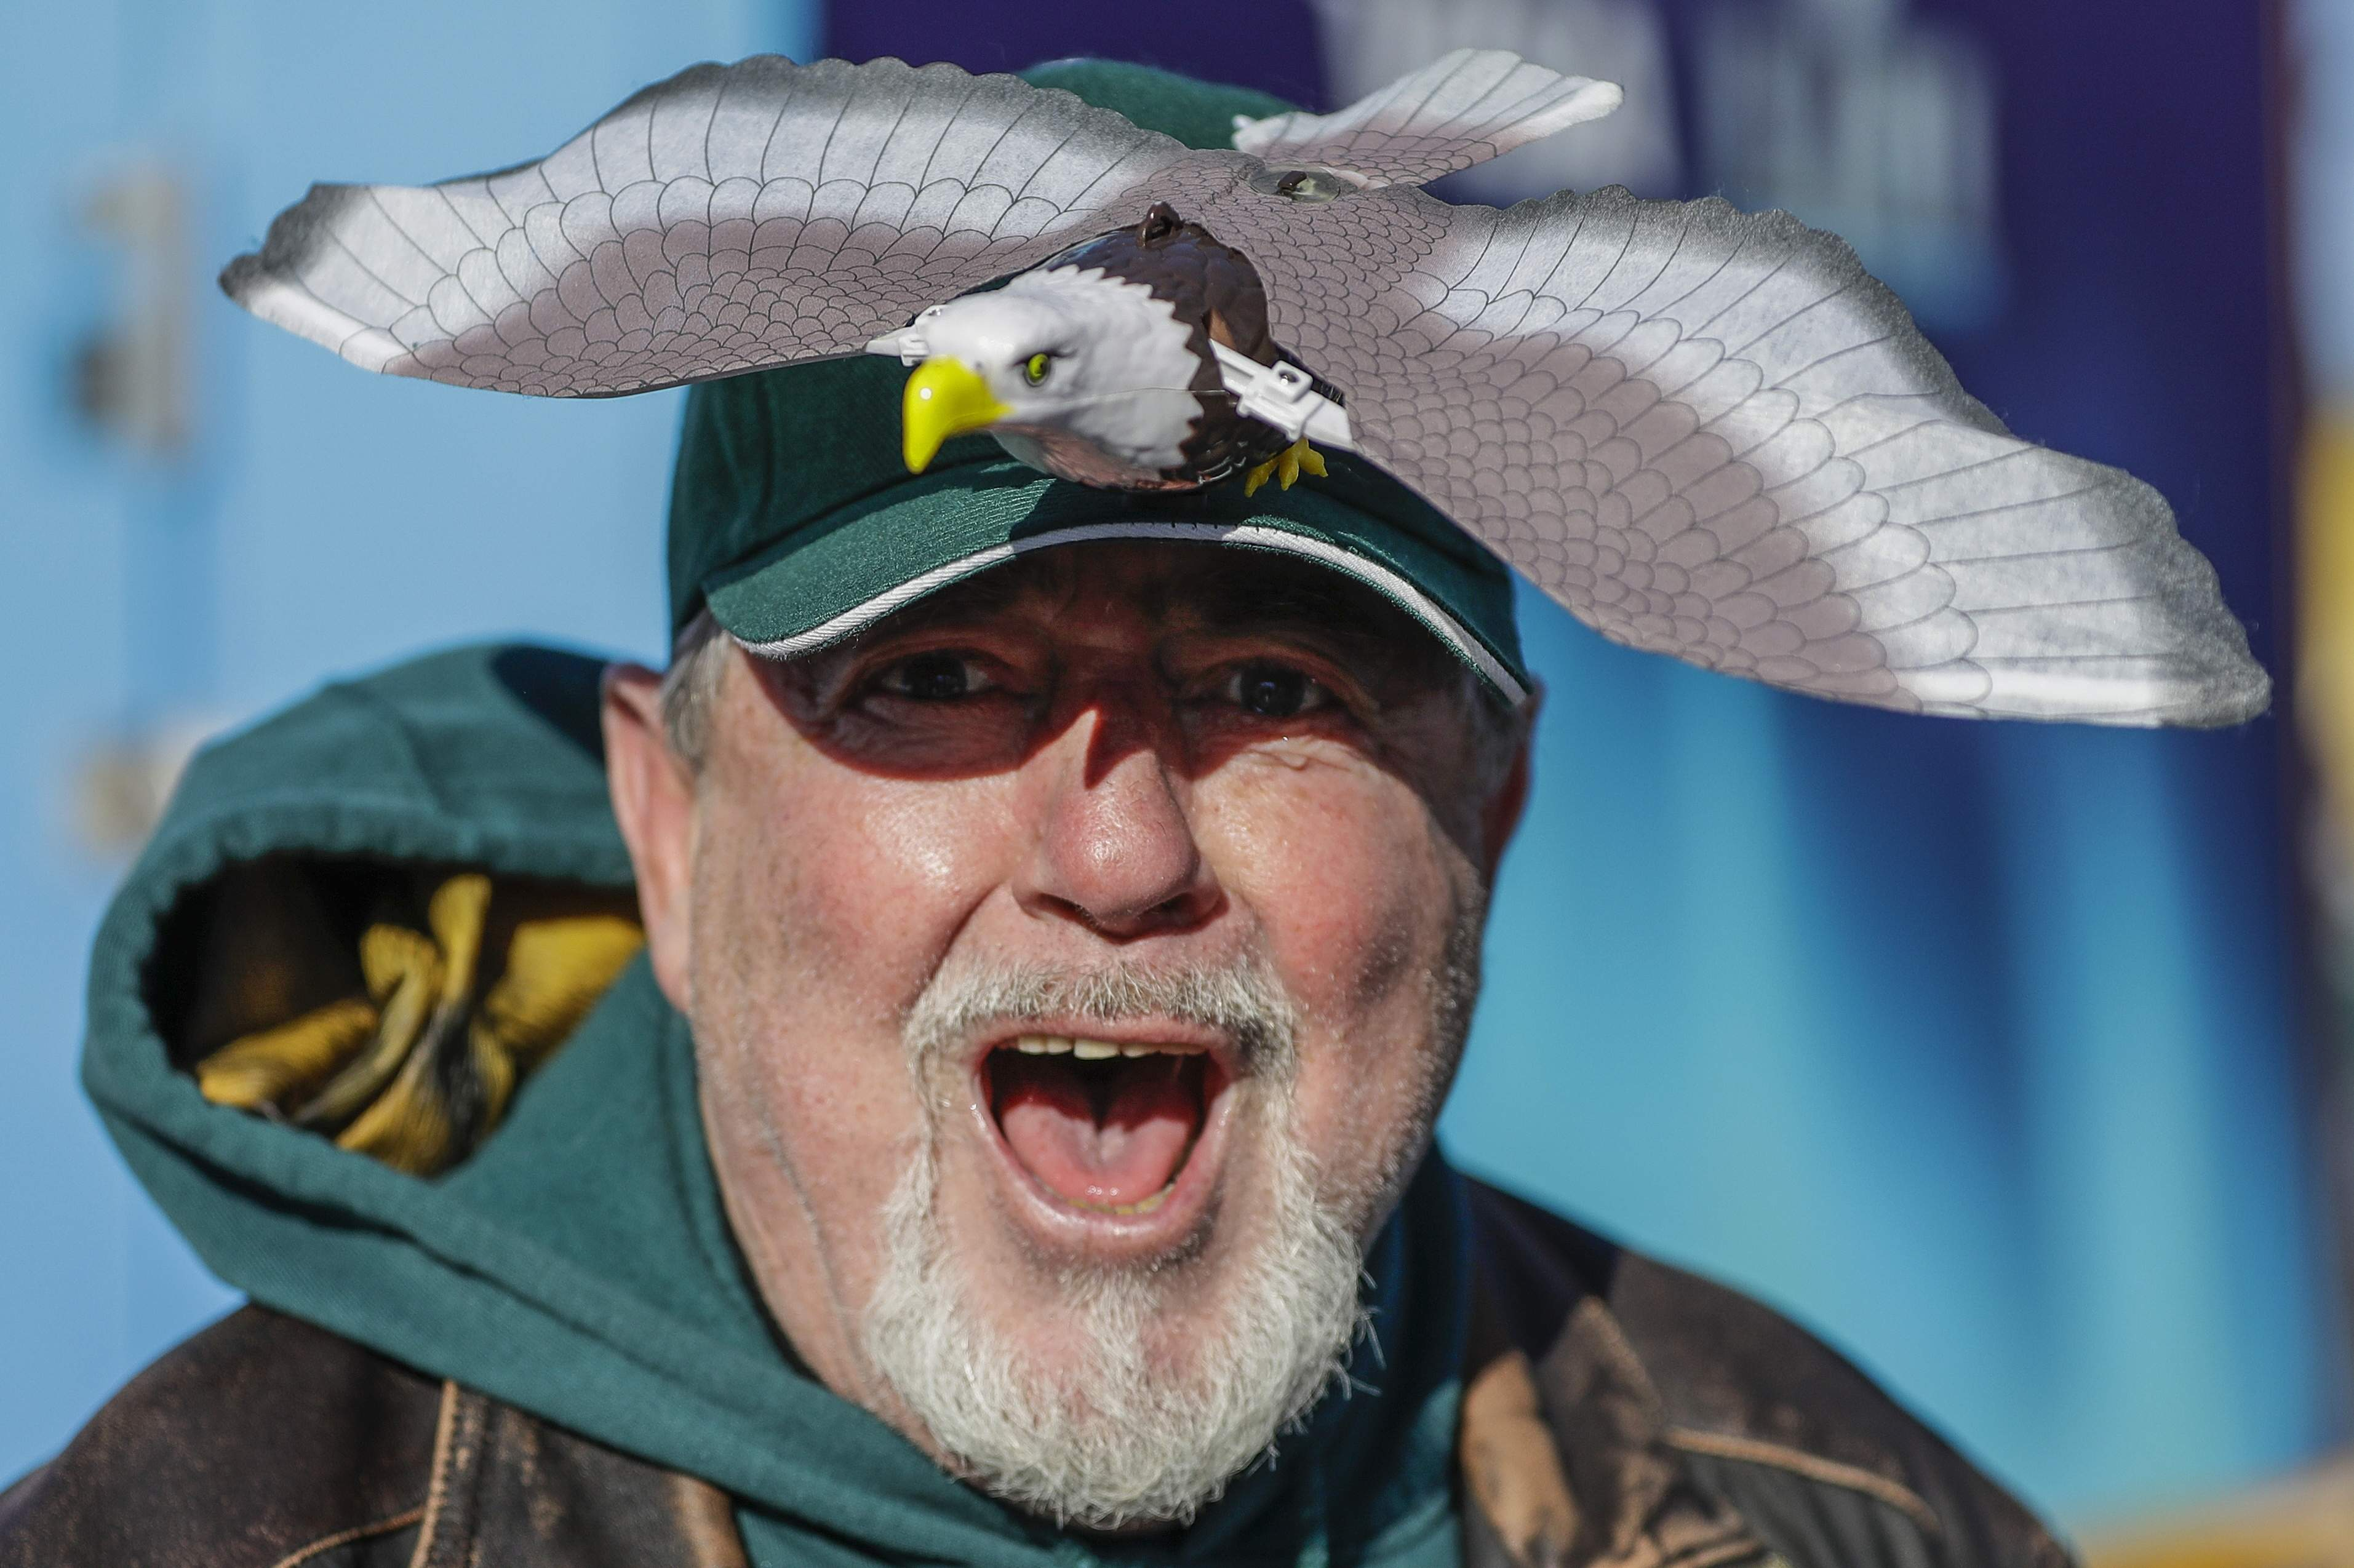 A Philadelphia Eagles fan cheers outside U.S. Bank Stadium before the NFL Super Bowl 52 football game against the New England Patriots Sunday, Feb. 4, 2018, in Minneapolis. (AP Photo/Mark Humphrey)